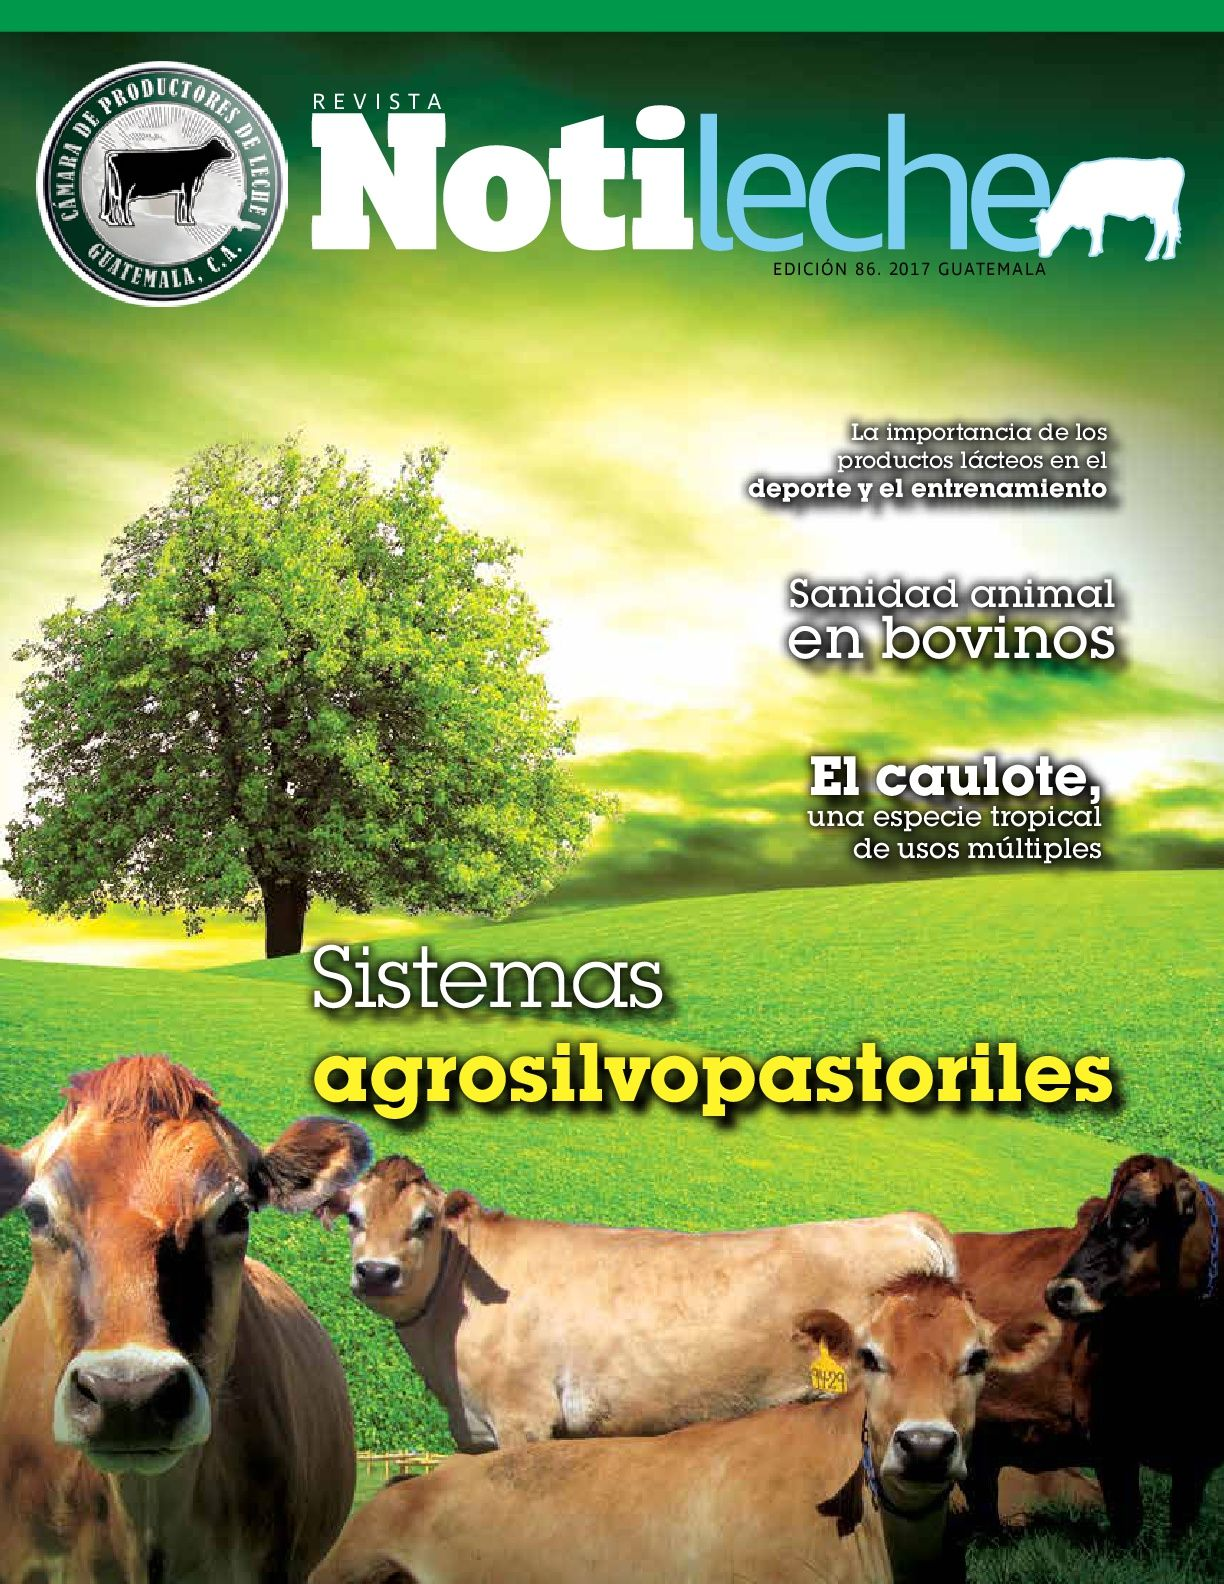 http://camaradeproductoresdeleche.org.gt/wp-content/uploads/2017/02/Revista-NOTILECHE-No-85-CPLG.pdf